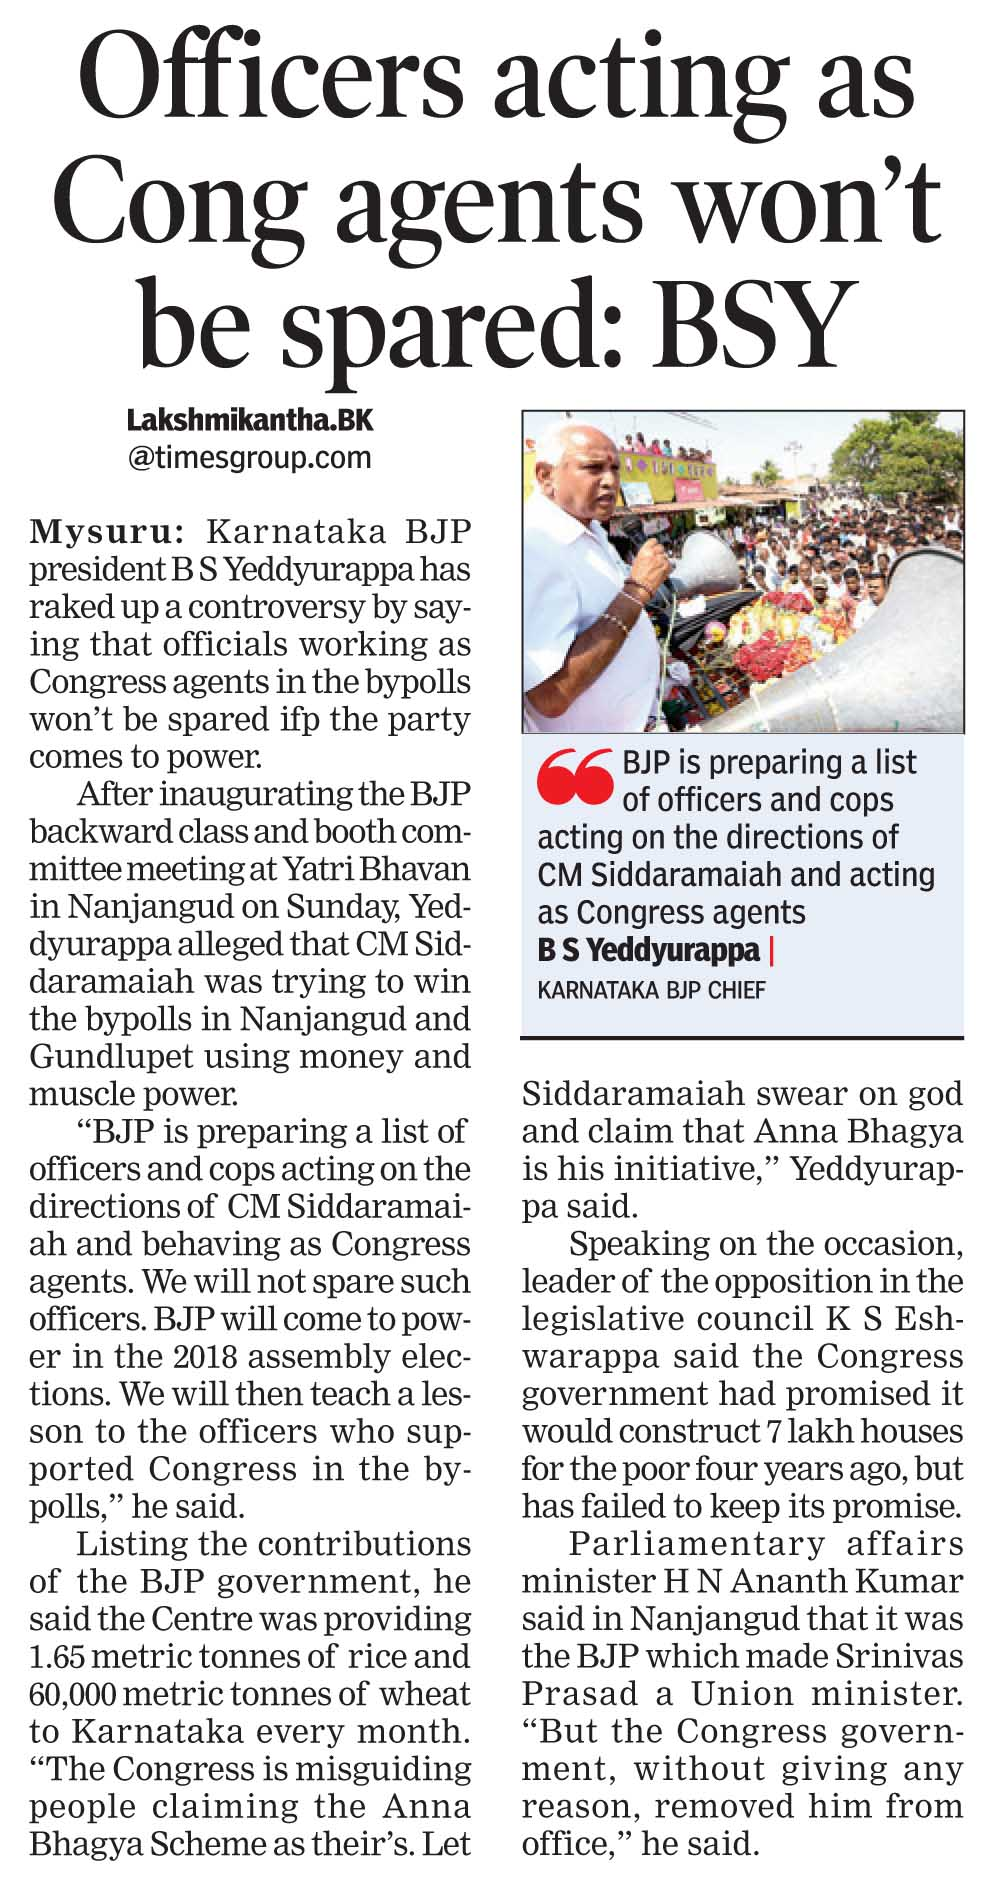 Officers acting as Cong agents won't be spared: bsy